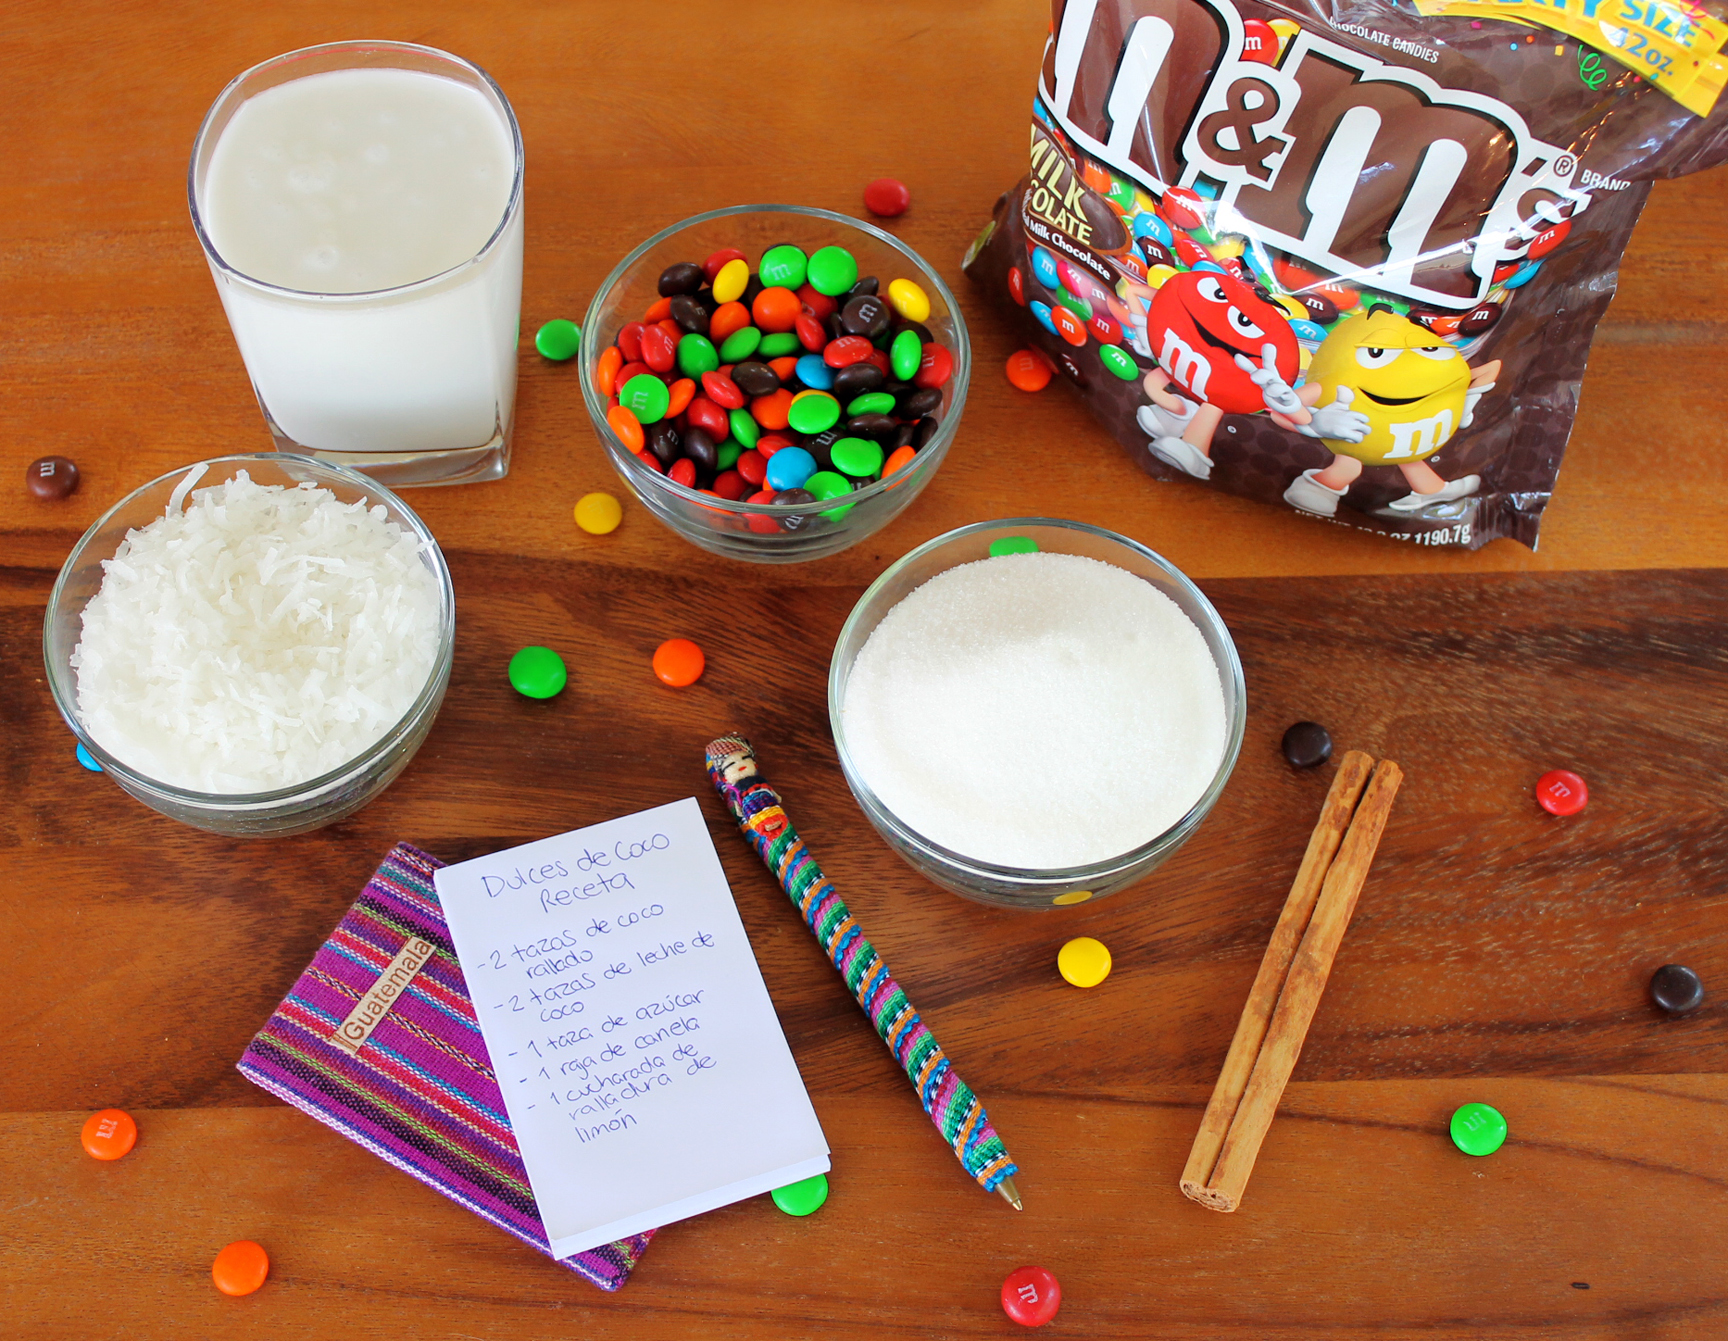 Baking with M&M's: Traditional Guatemalan Coconut Candy With